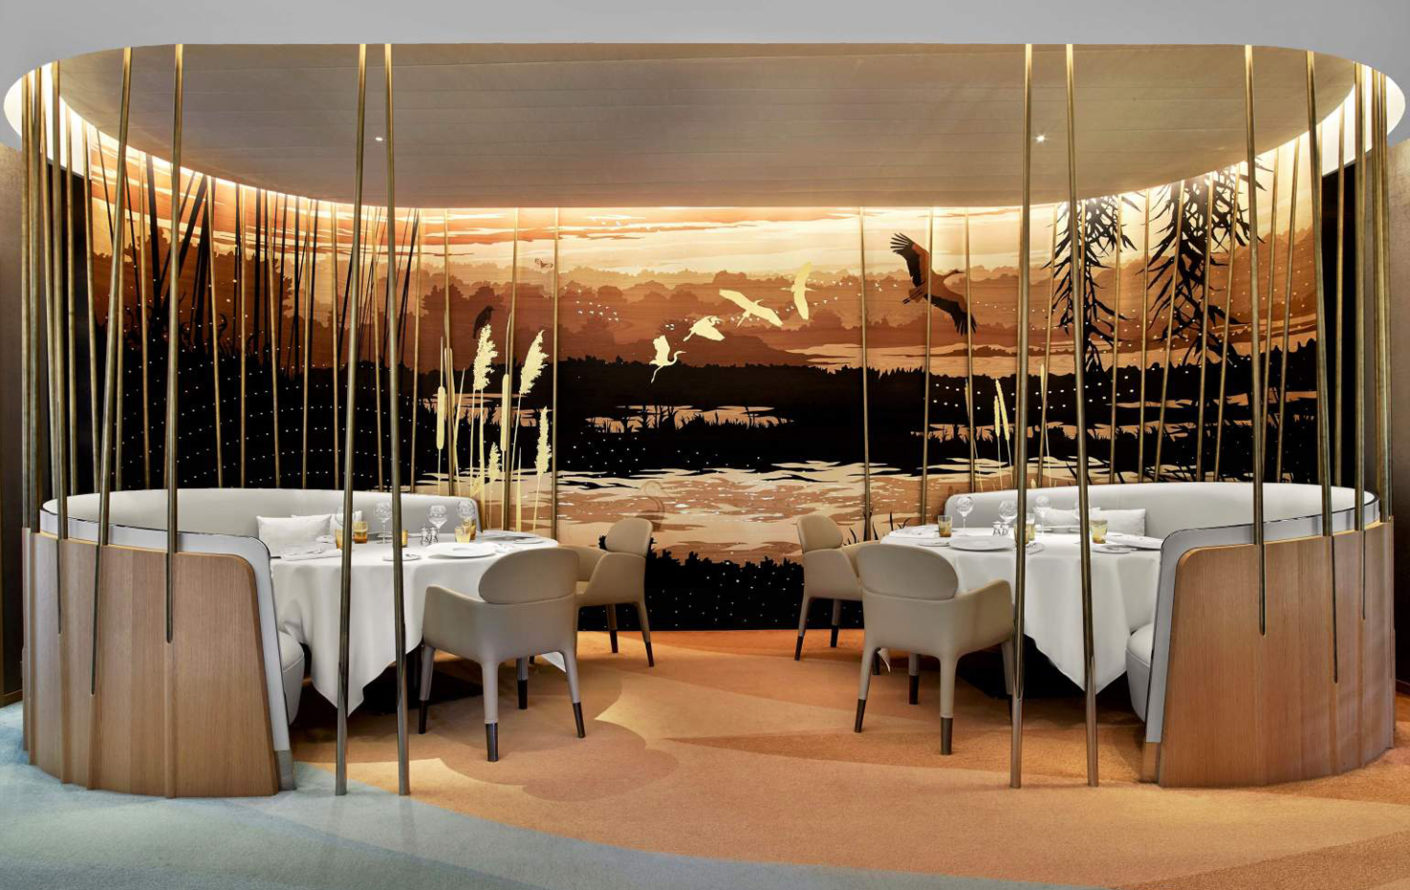 Appearance of a reed landscape: wall decorations inspired by nature offer a pleasant atmosphere.